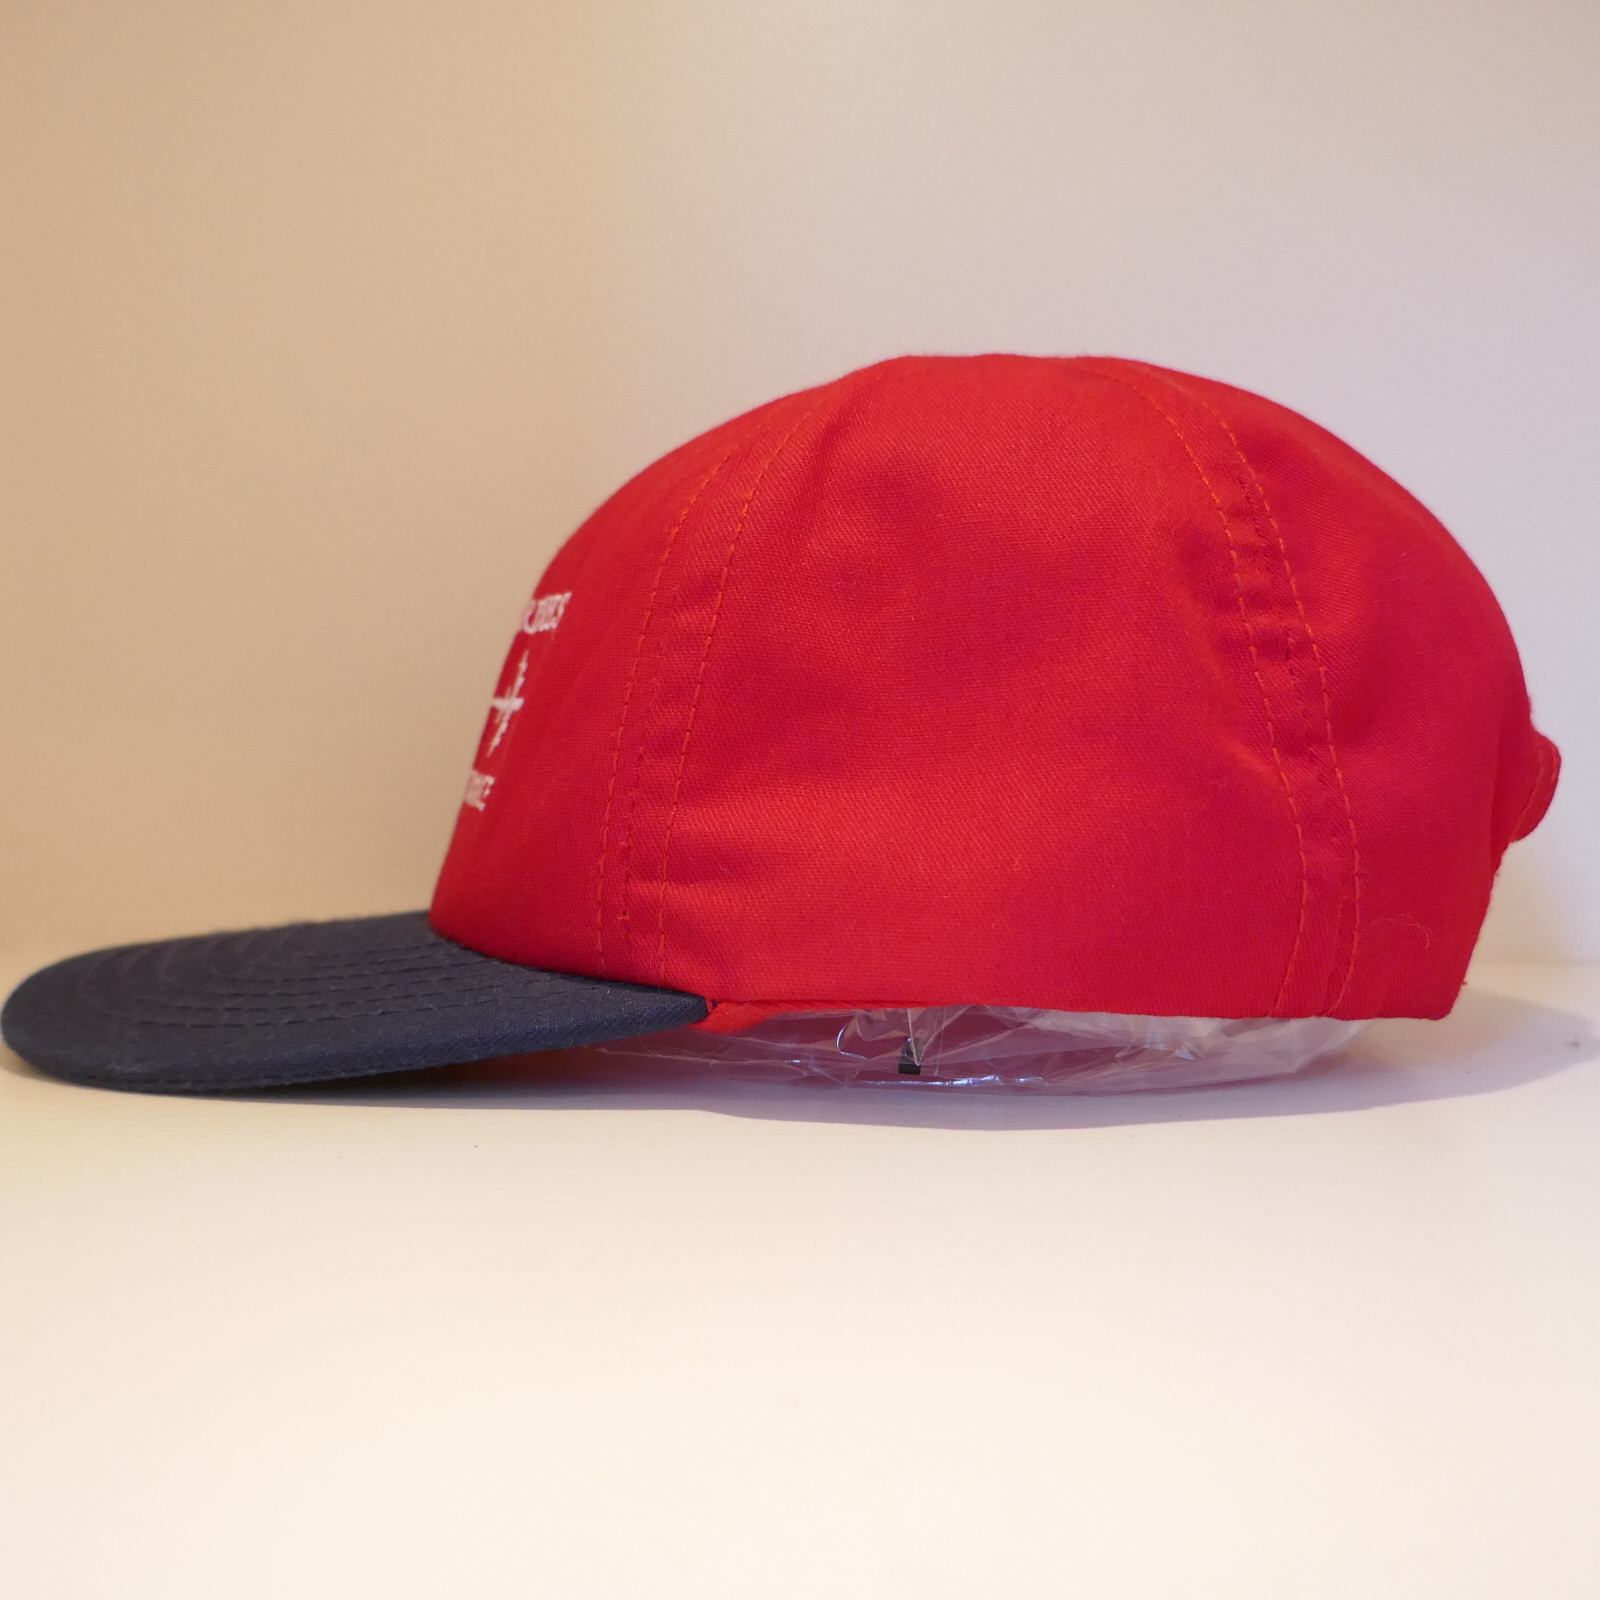 USED UNITED AIRLINES CAP RED×BLACK